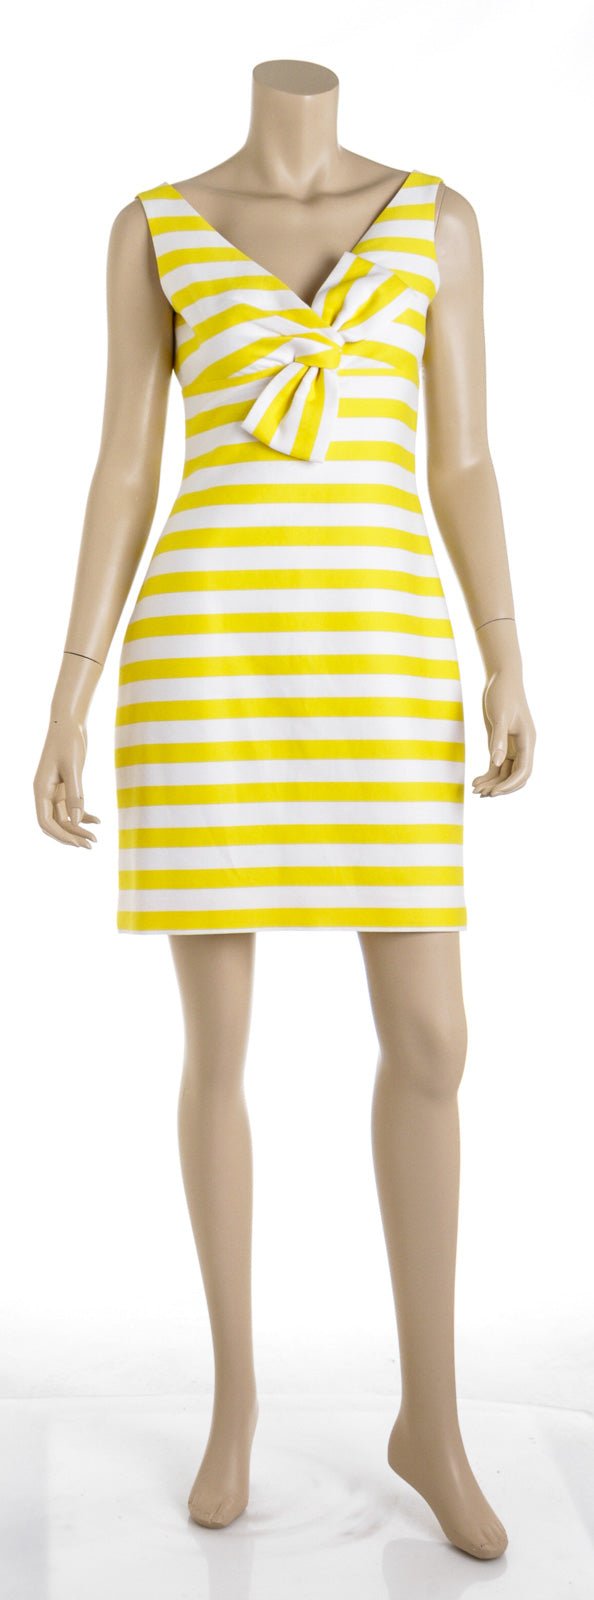 Kate Spade New York Silverscreen Sleeveless Striped Bow Dress (Size 4)